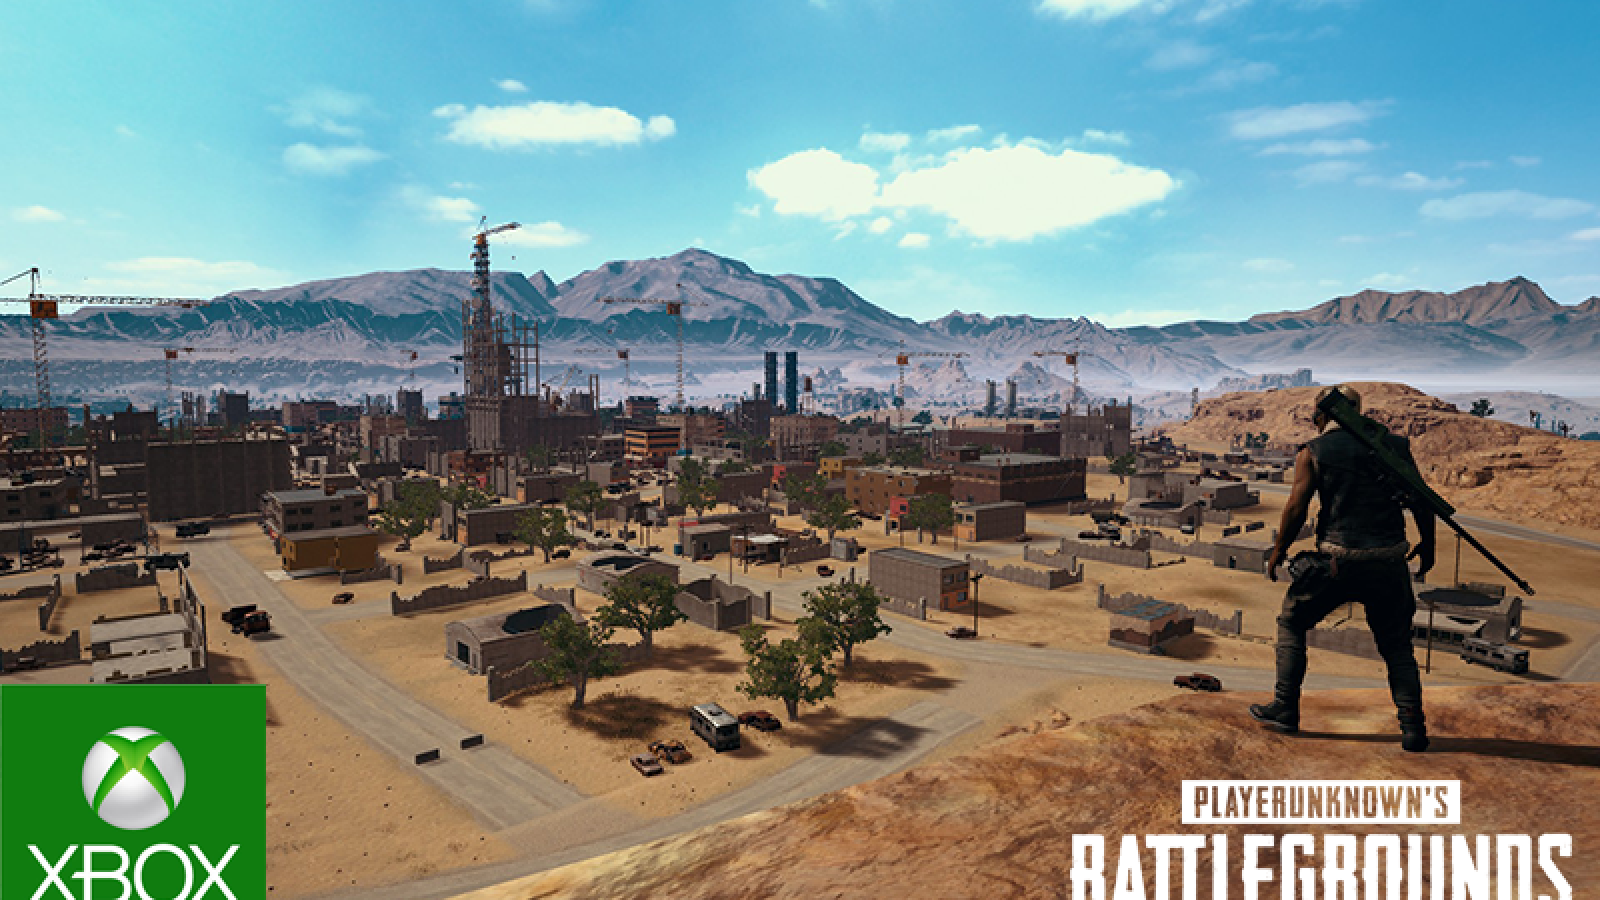 PUBG' Xbox Update 18 Adds Weather & Limb Penetration - Patch Notes